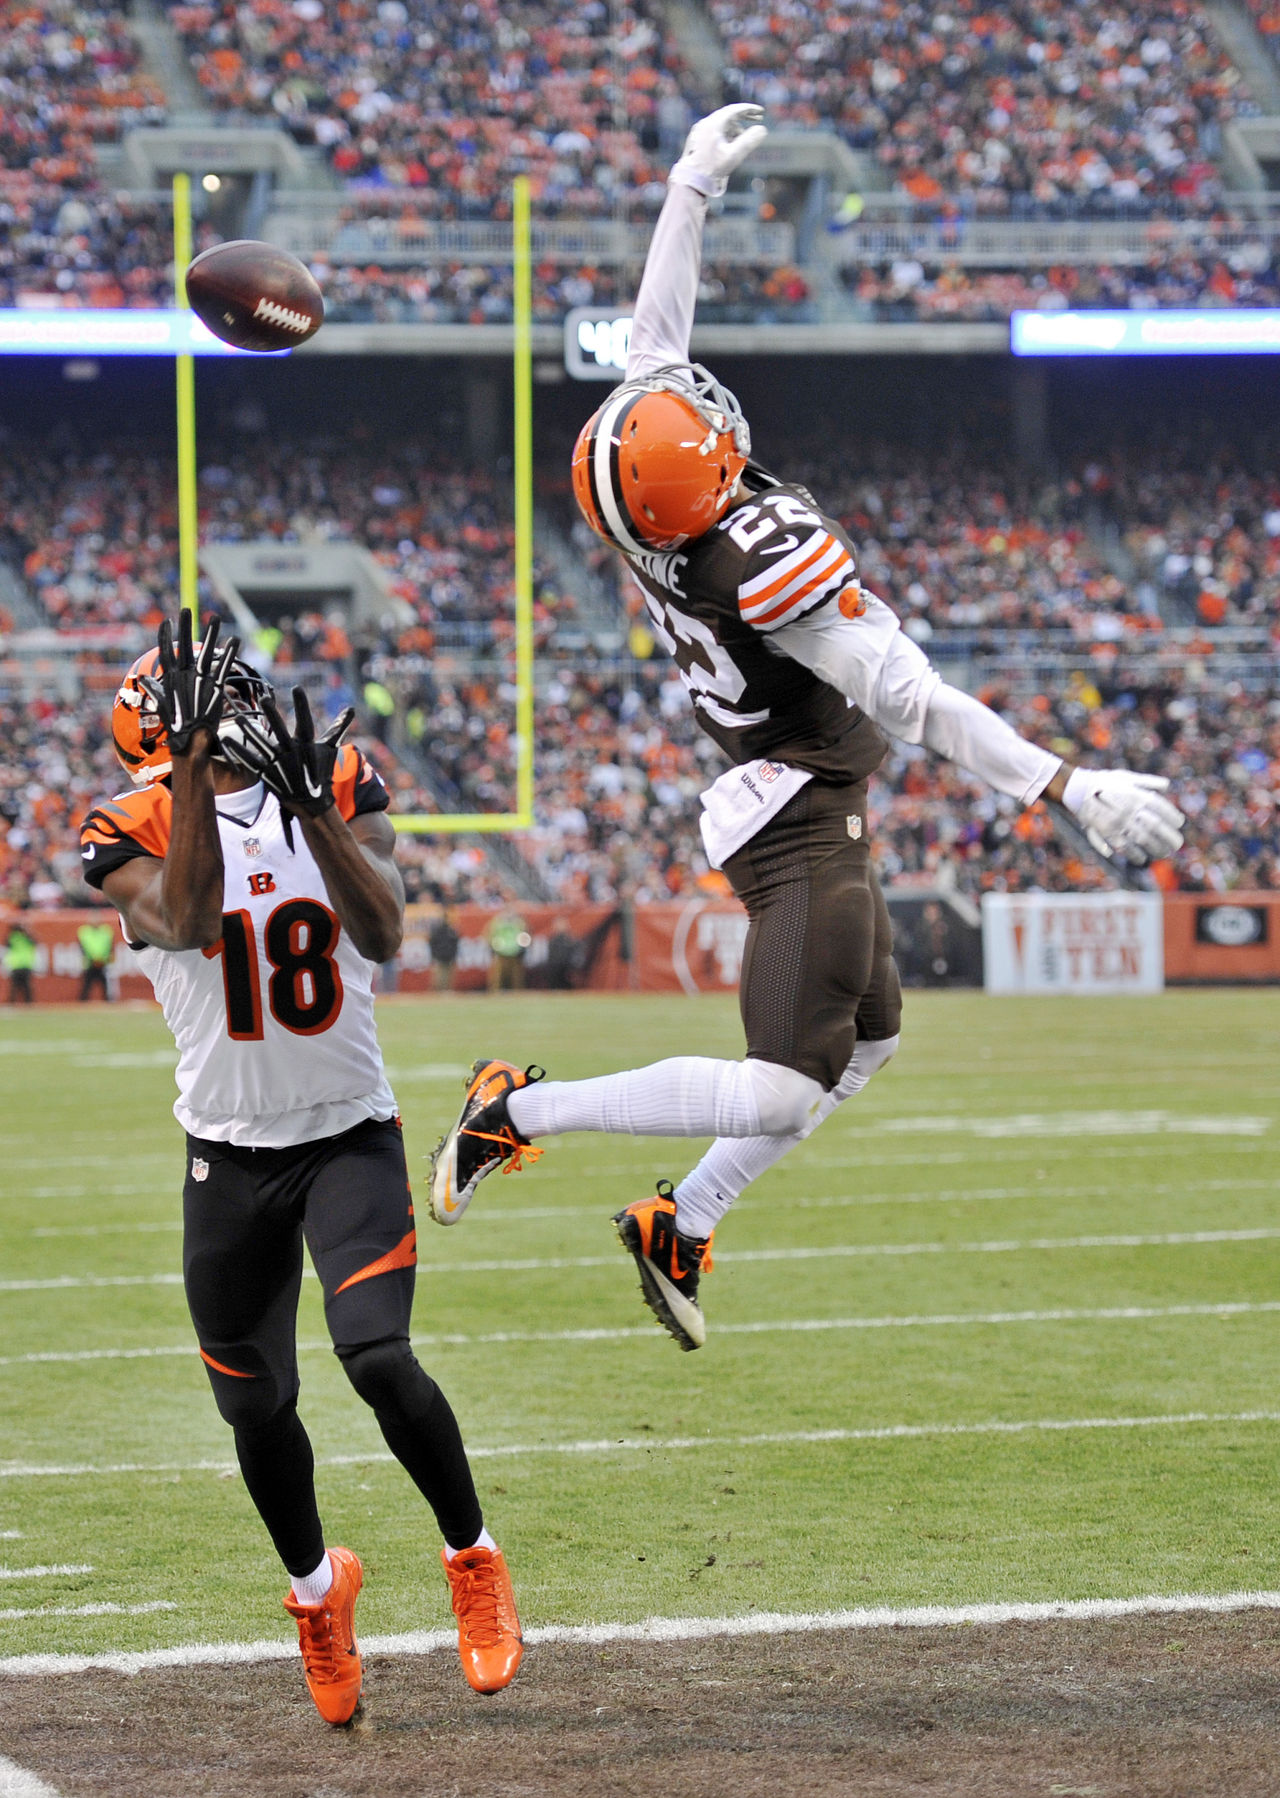 Buster Skrine NFLcom Photos Bengals Browns Football Jeremy Hill